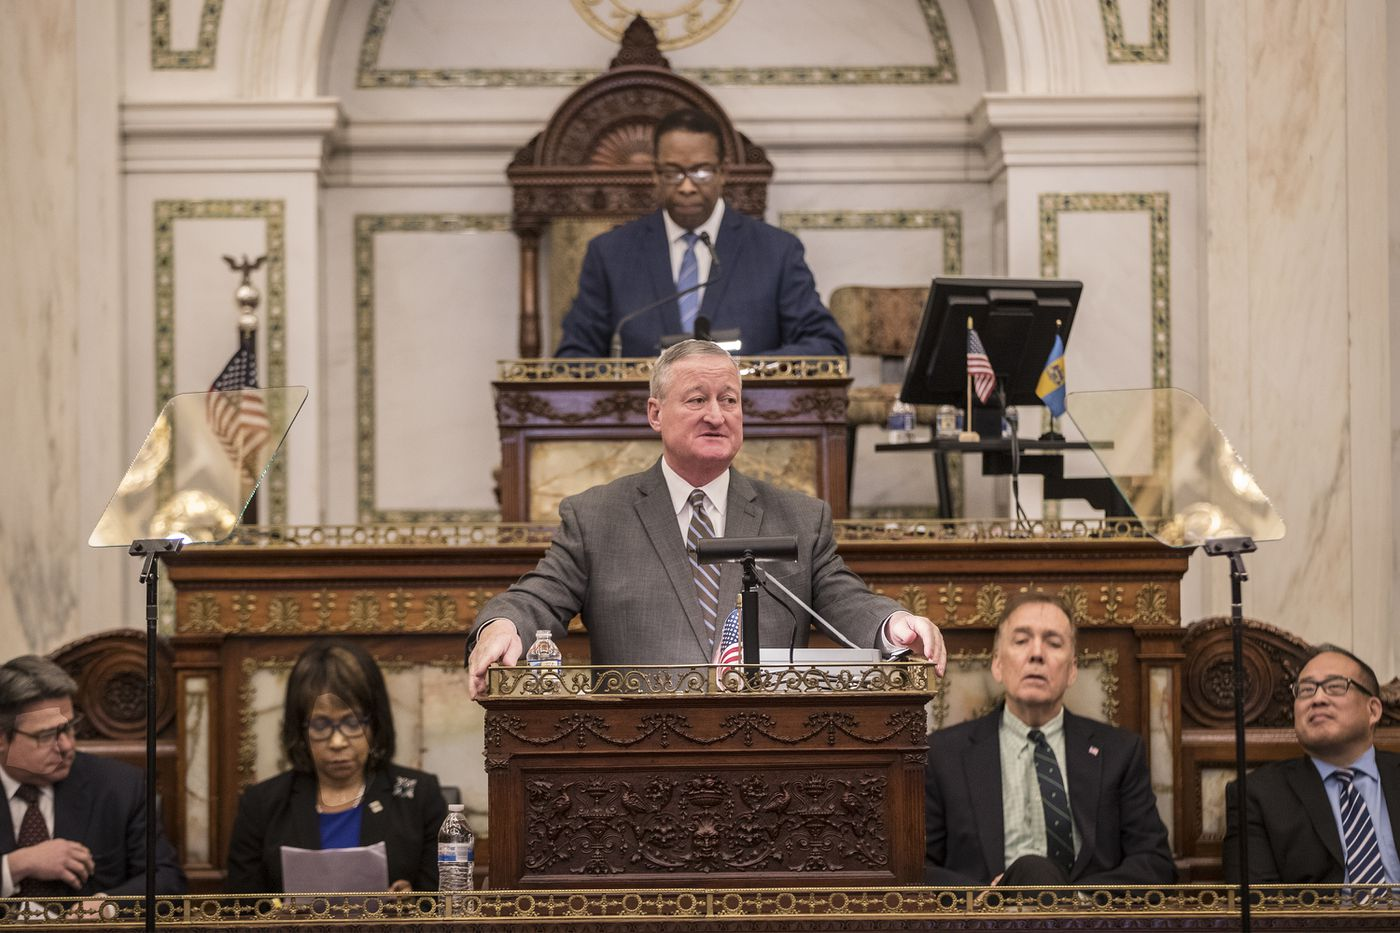 Philly makes pension management harder than it has to be | Editorial